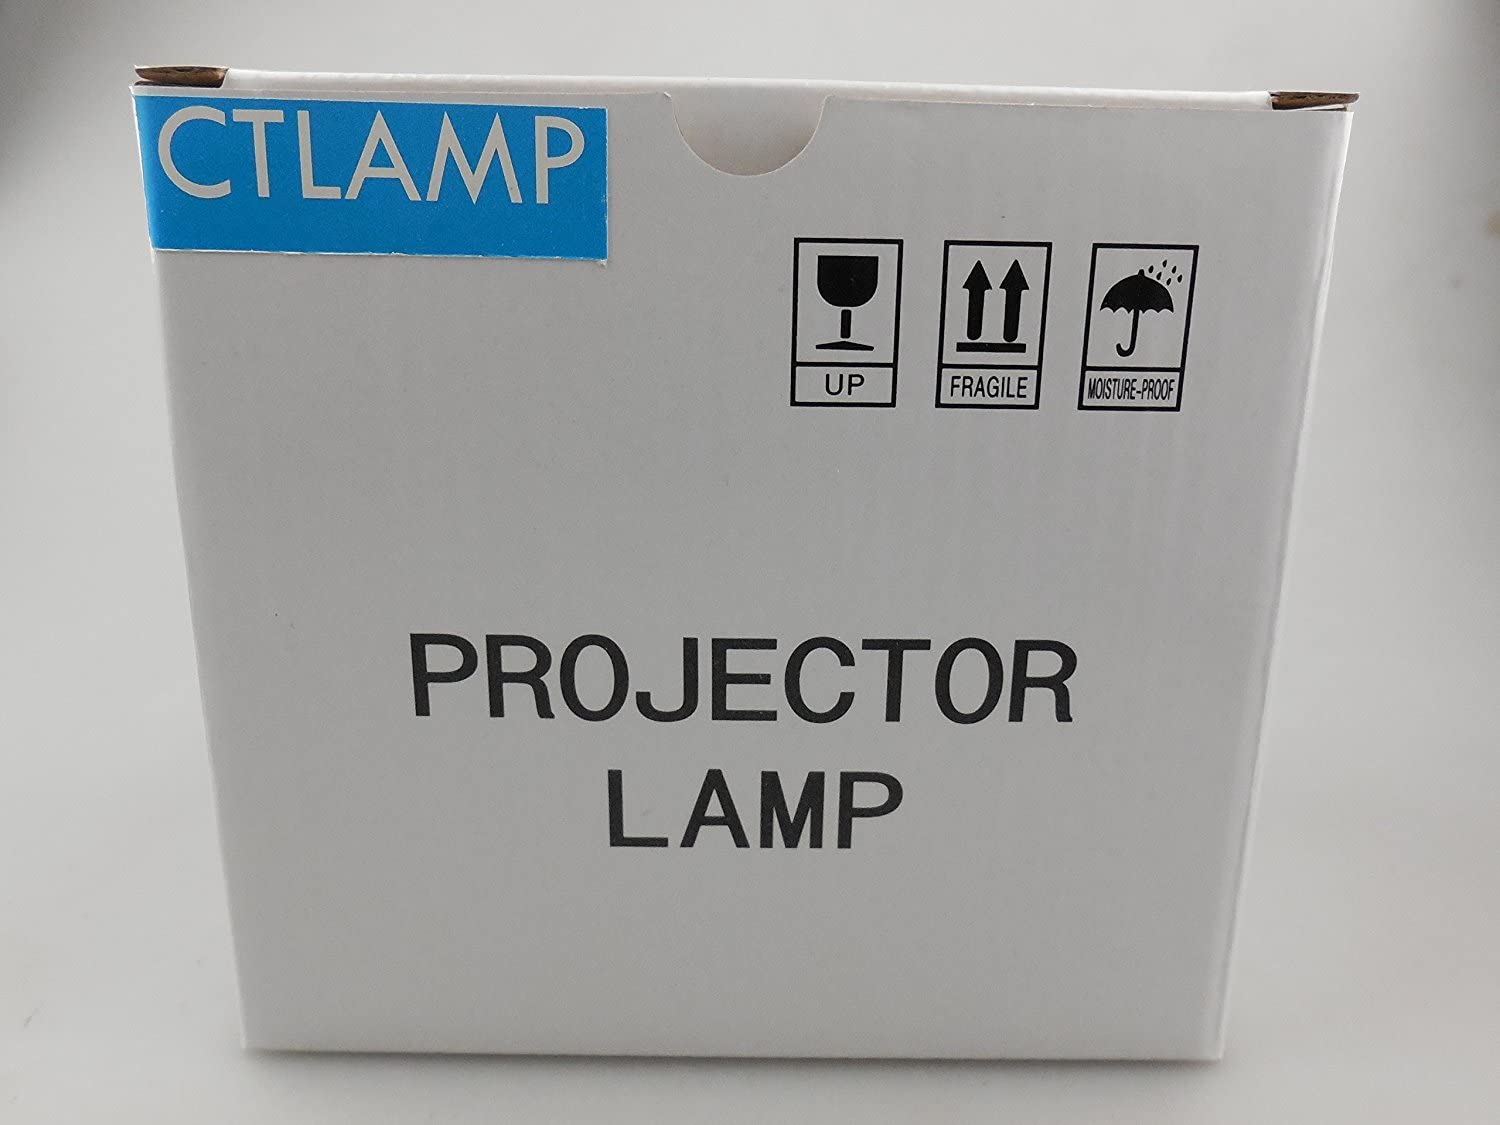 CTLAMP Premium Quality ET-LAD35 ETLAD35 Replacement Projector Lamp Bulb with Housing Compatible with Panasonic PT-D3500 PT-D3500E PT-D3500U PT-FD350 ET-LAD35H Projectors